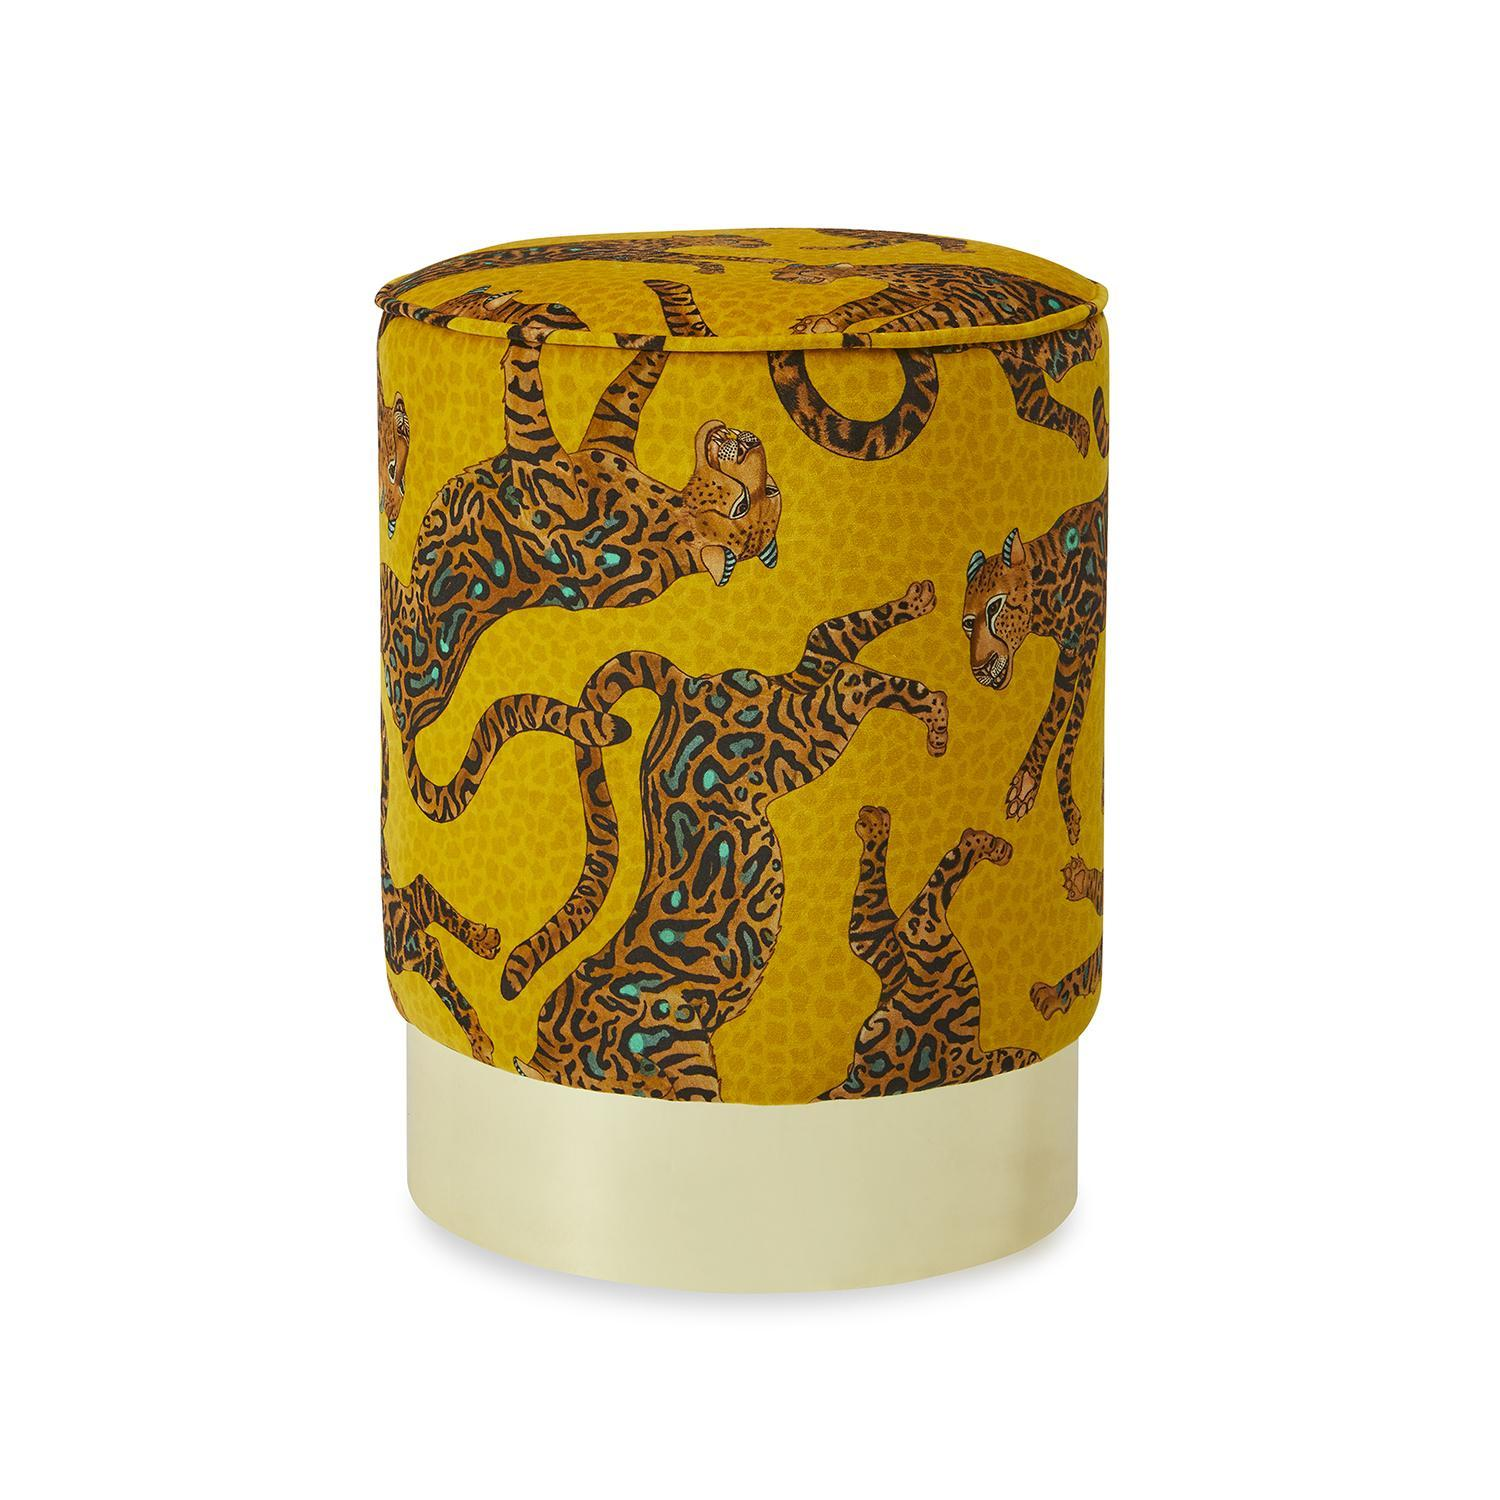 Cheetah Kings Velvet Pouf on Gold Base - Gold